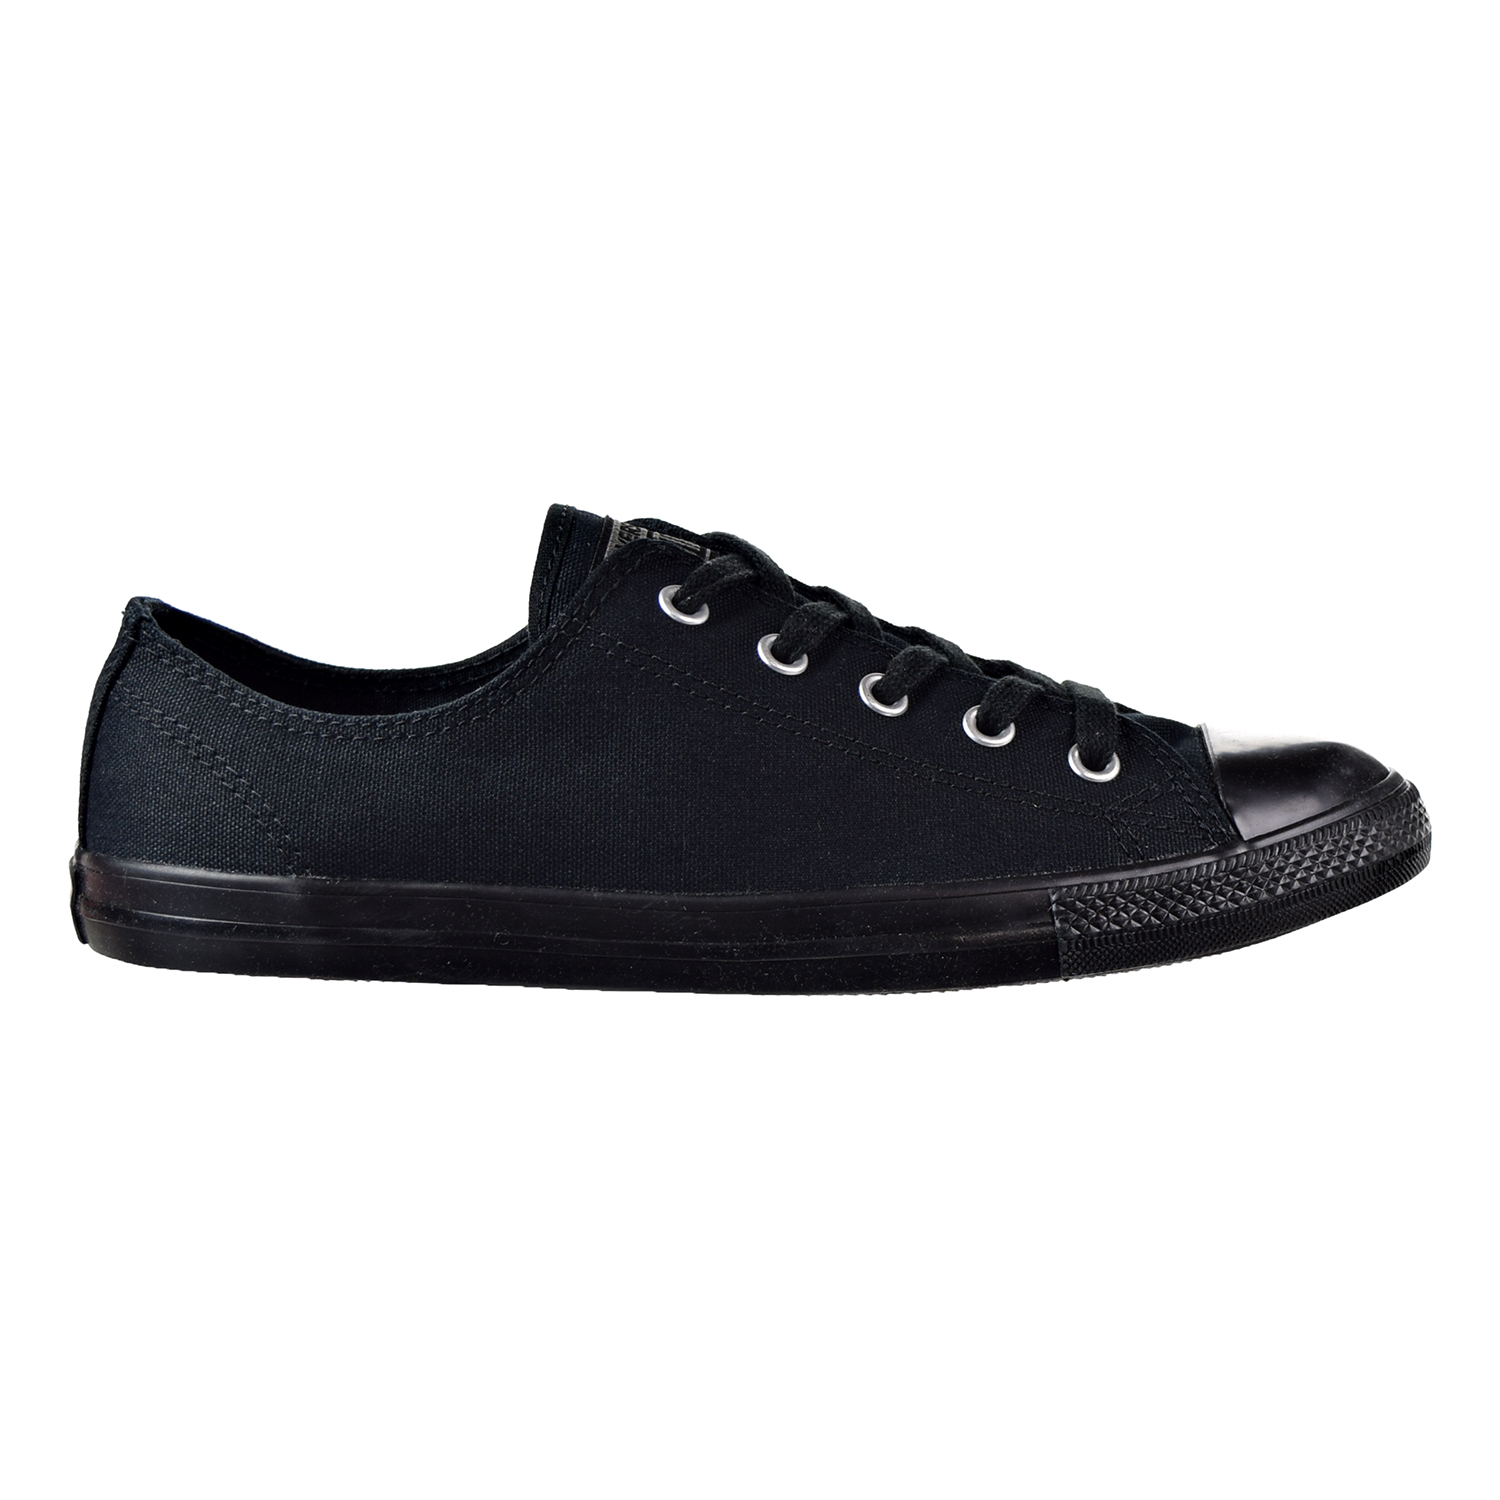 5298c0345c46 Converse Chuck Taylor All Star Dainty Ox Women s Shoes Black Black 532354f